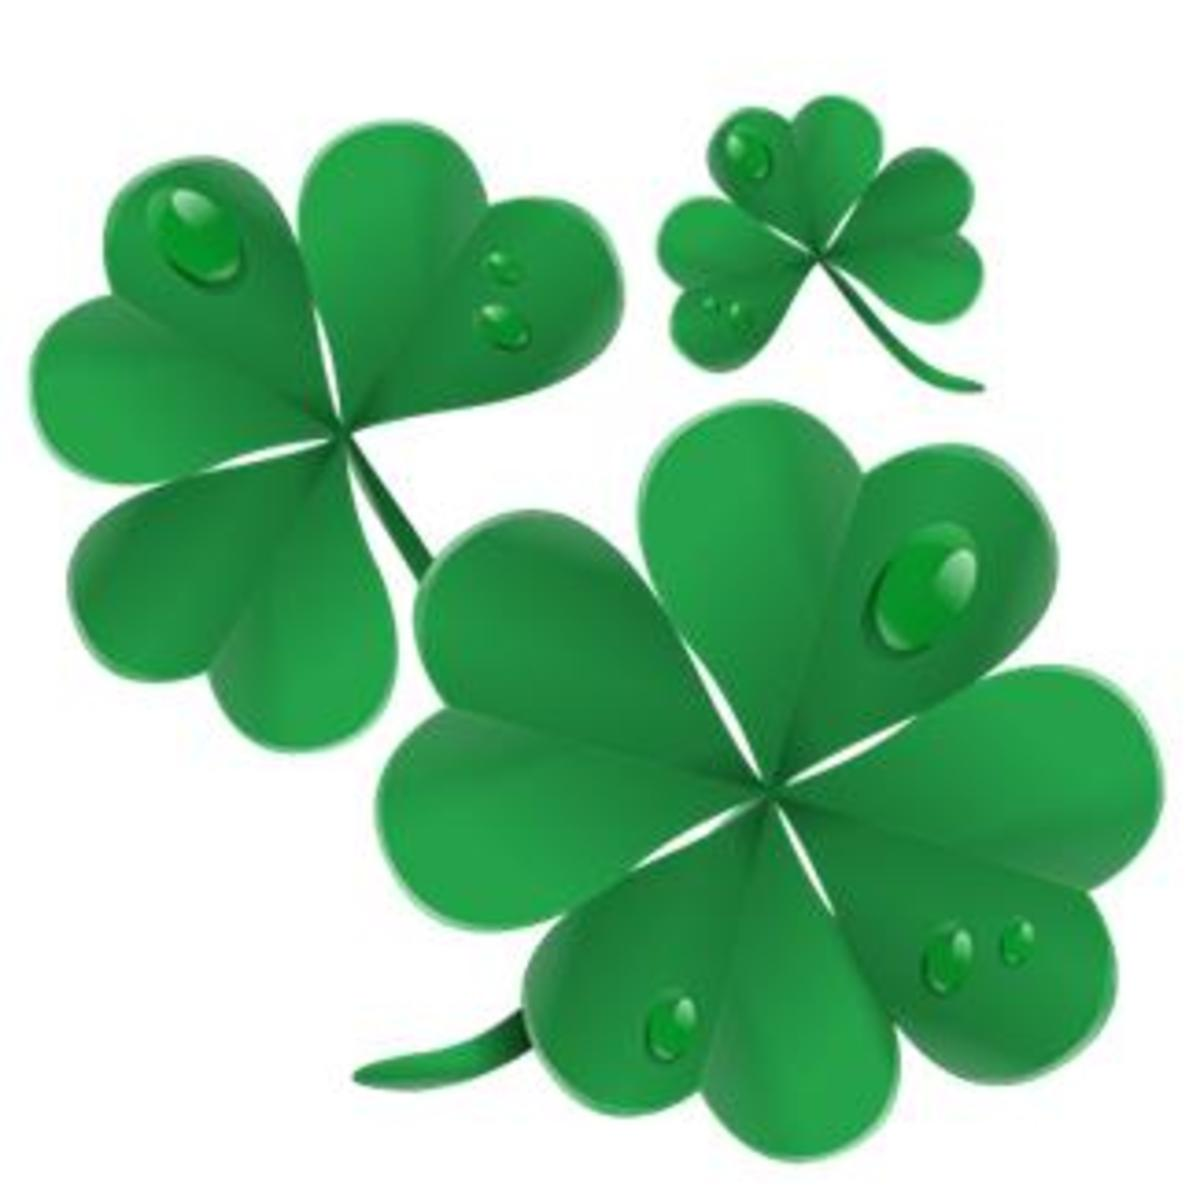 Three Shamrocks Image